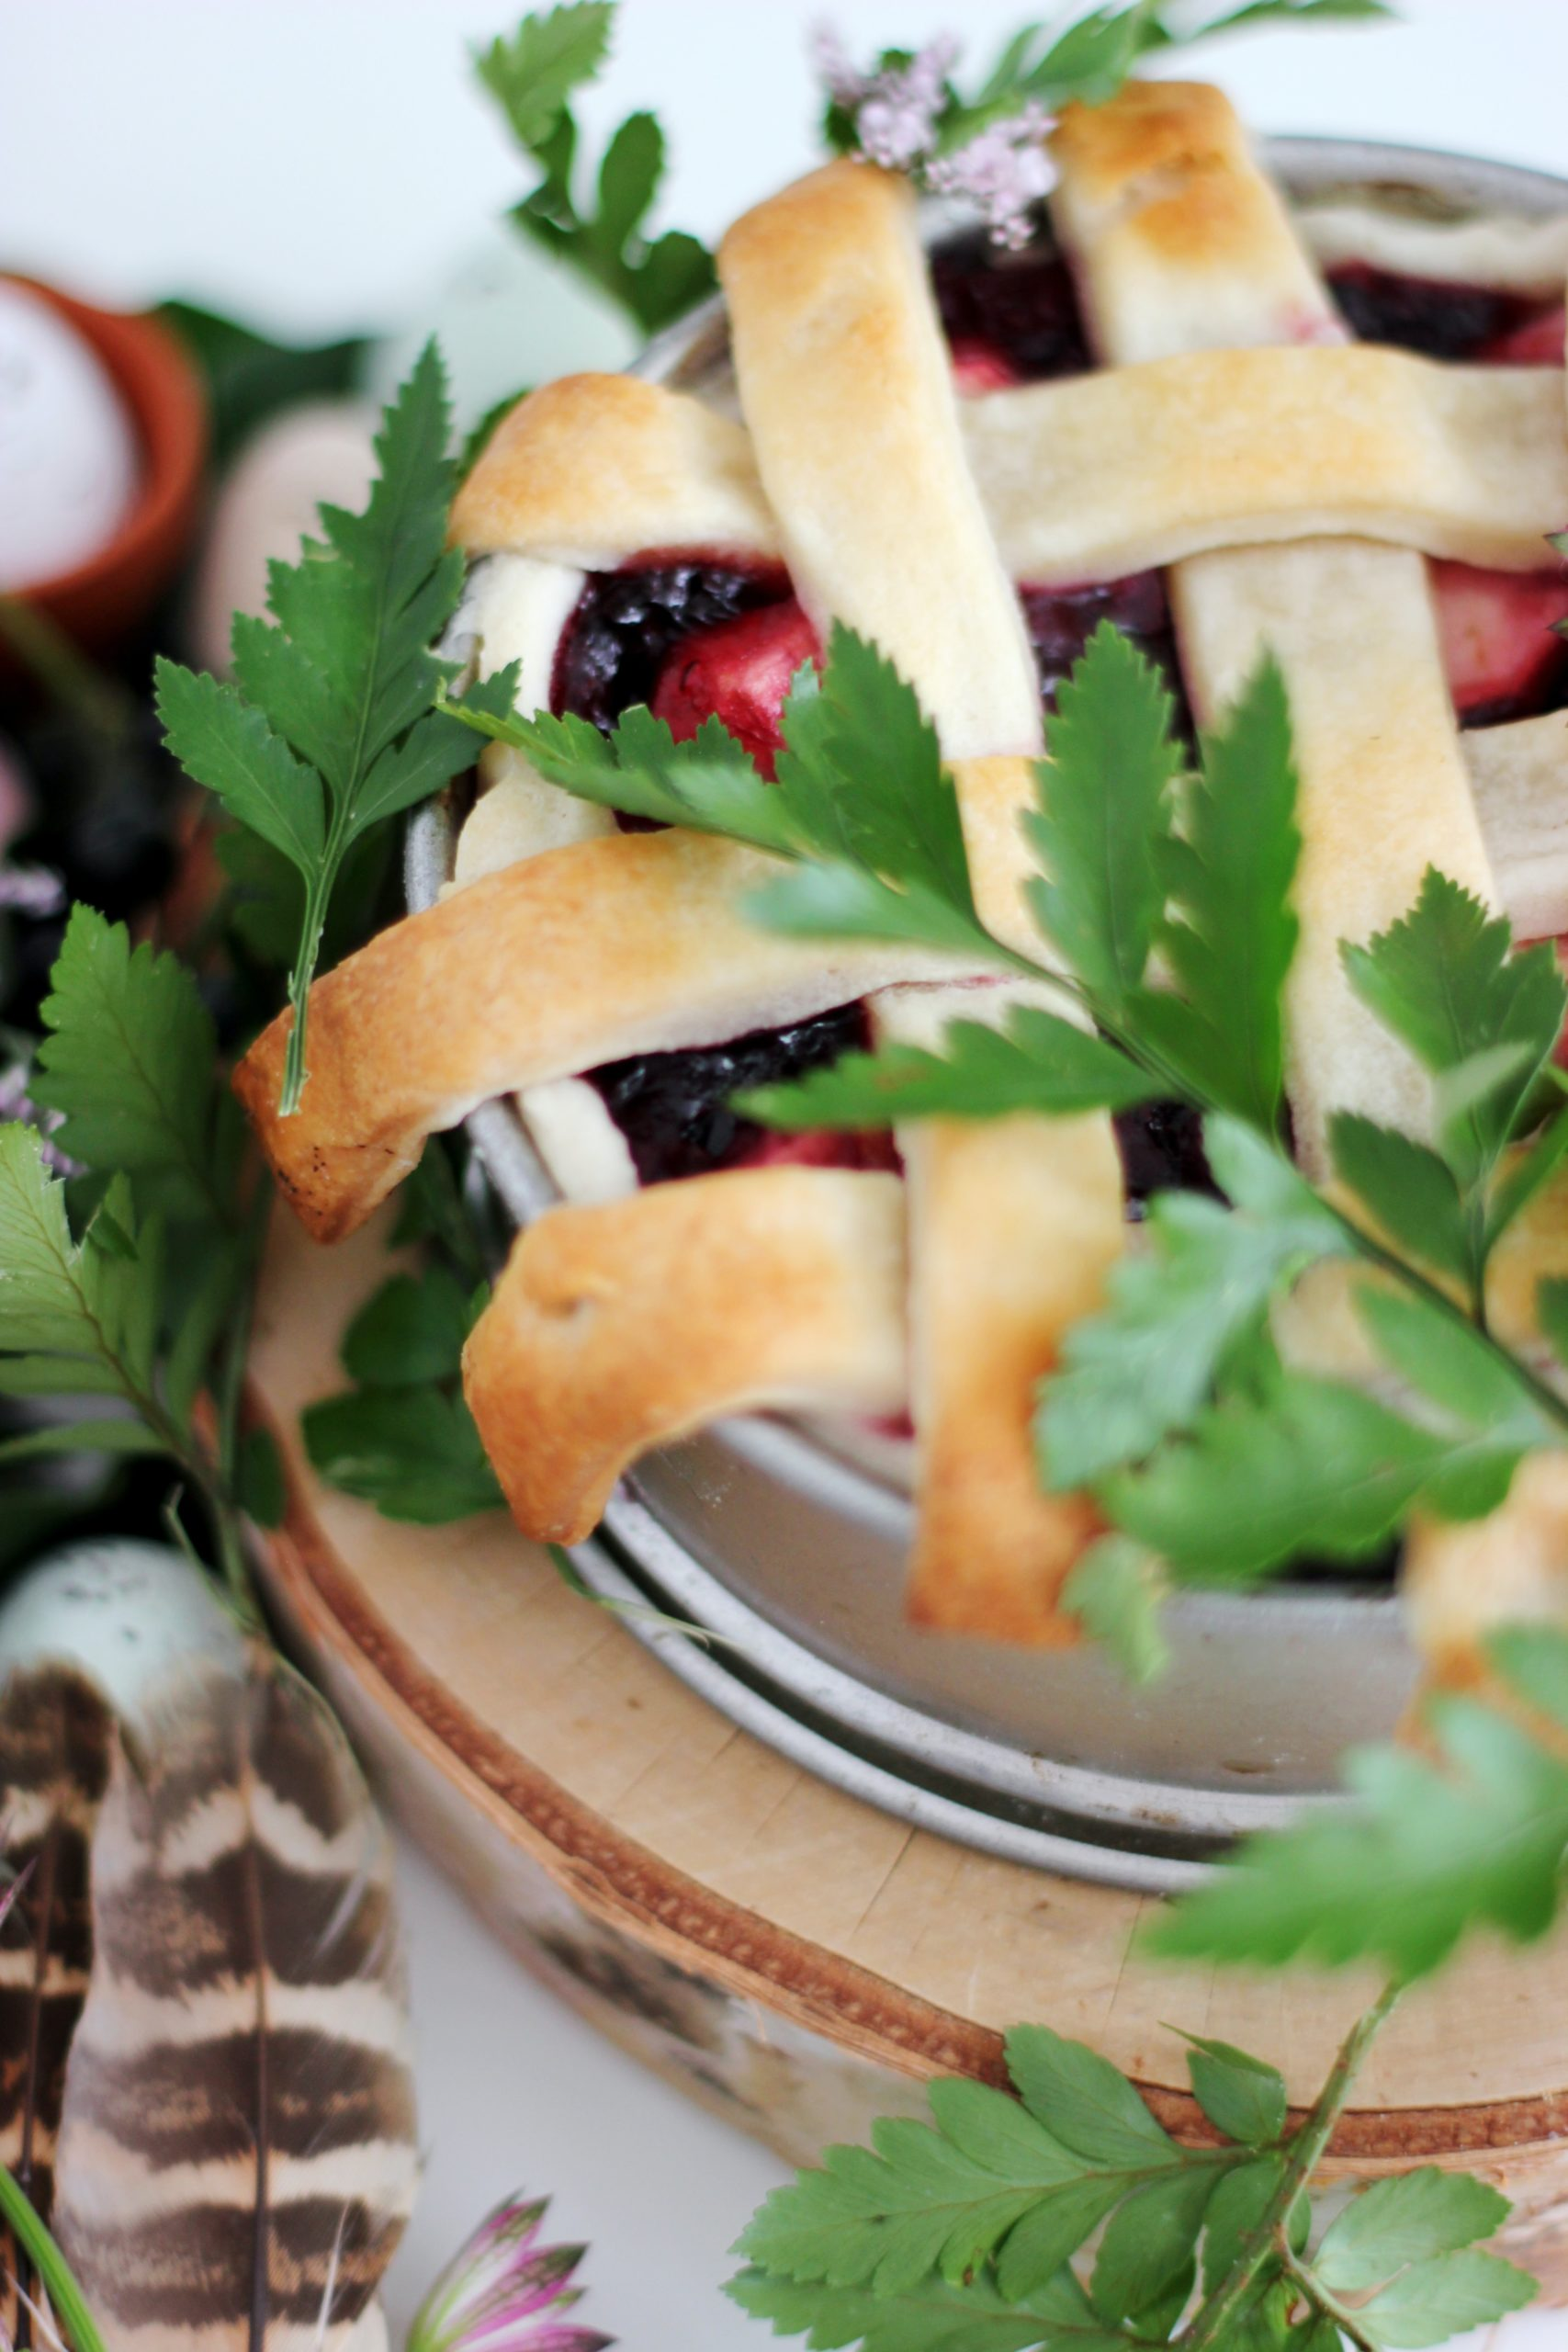 blueberry pie with parsley served on white ceramic bowl